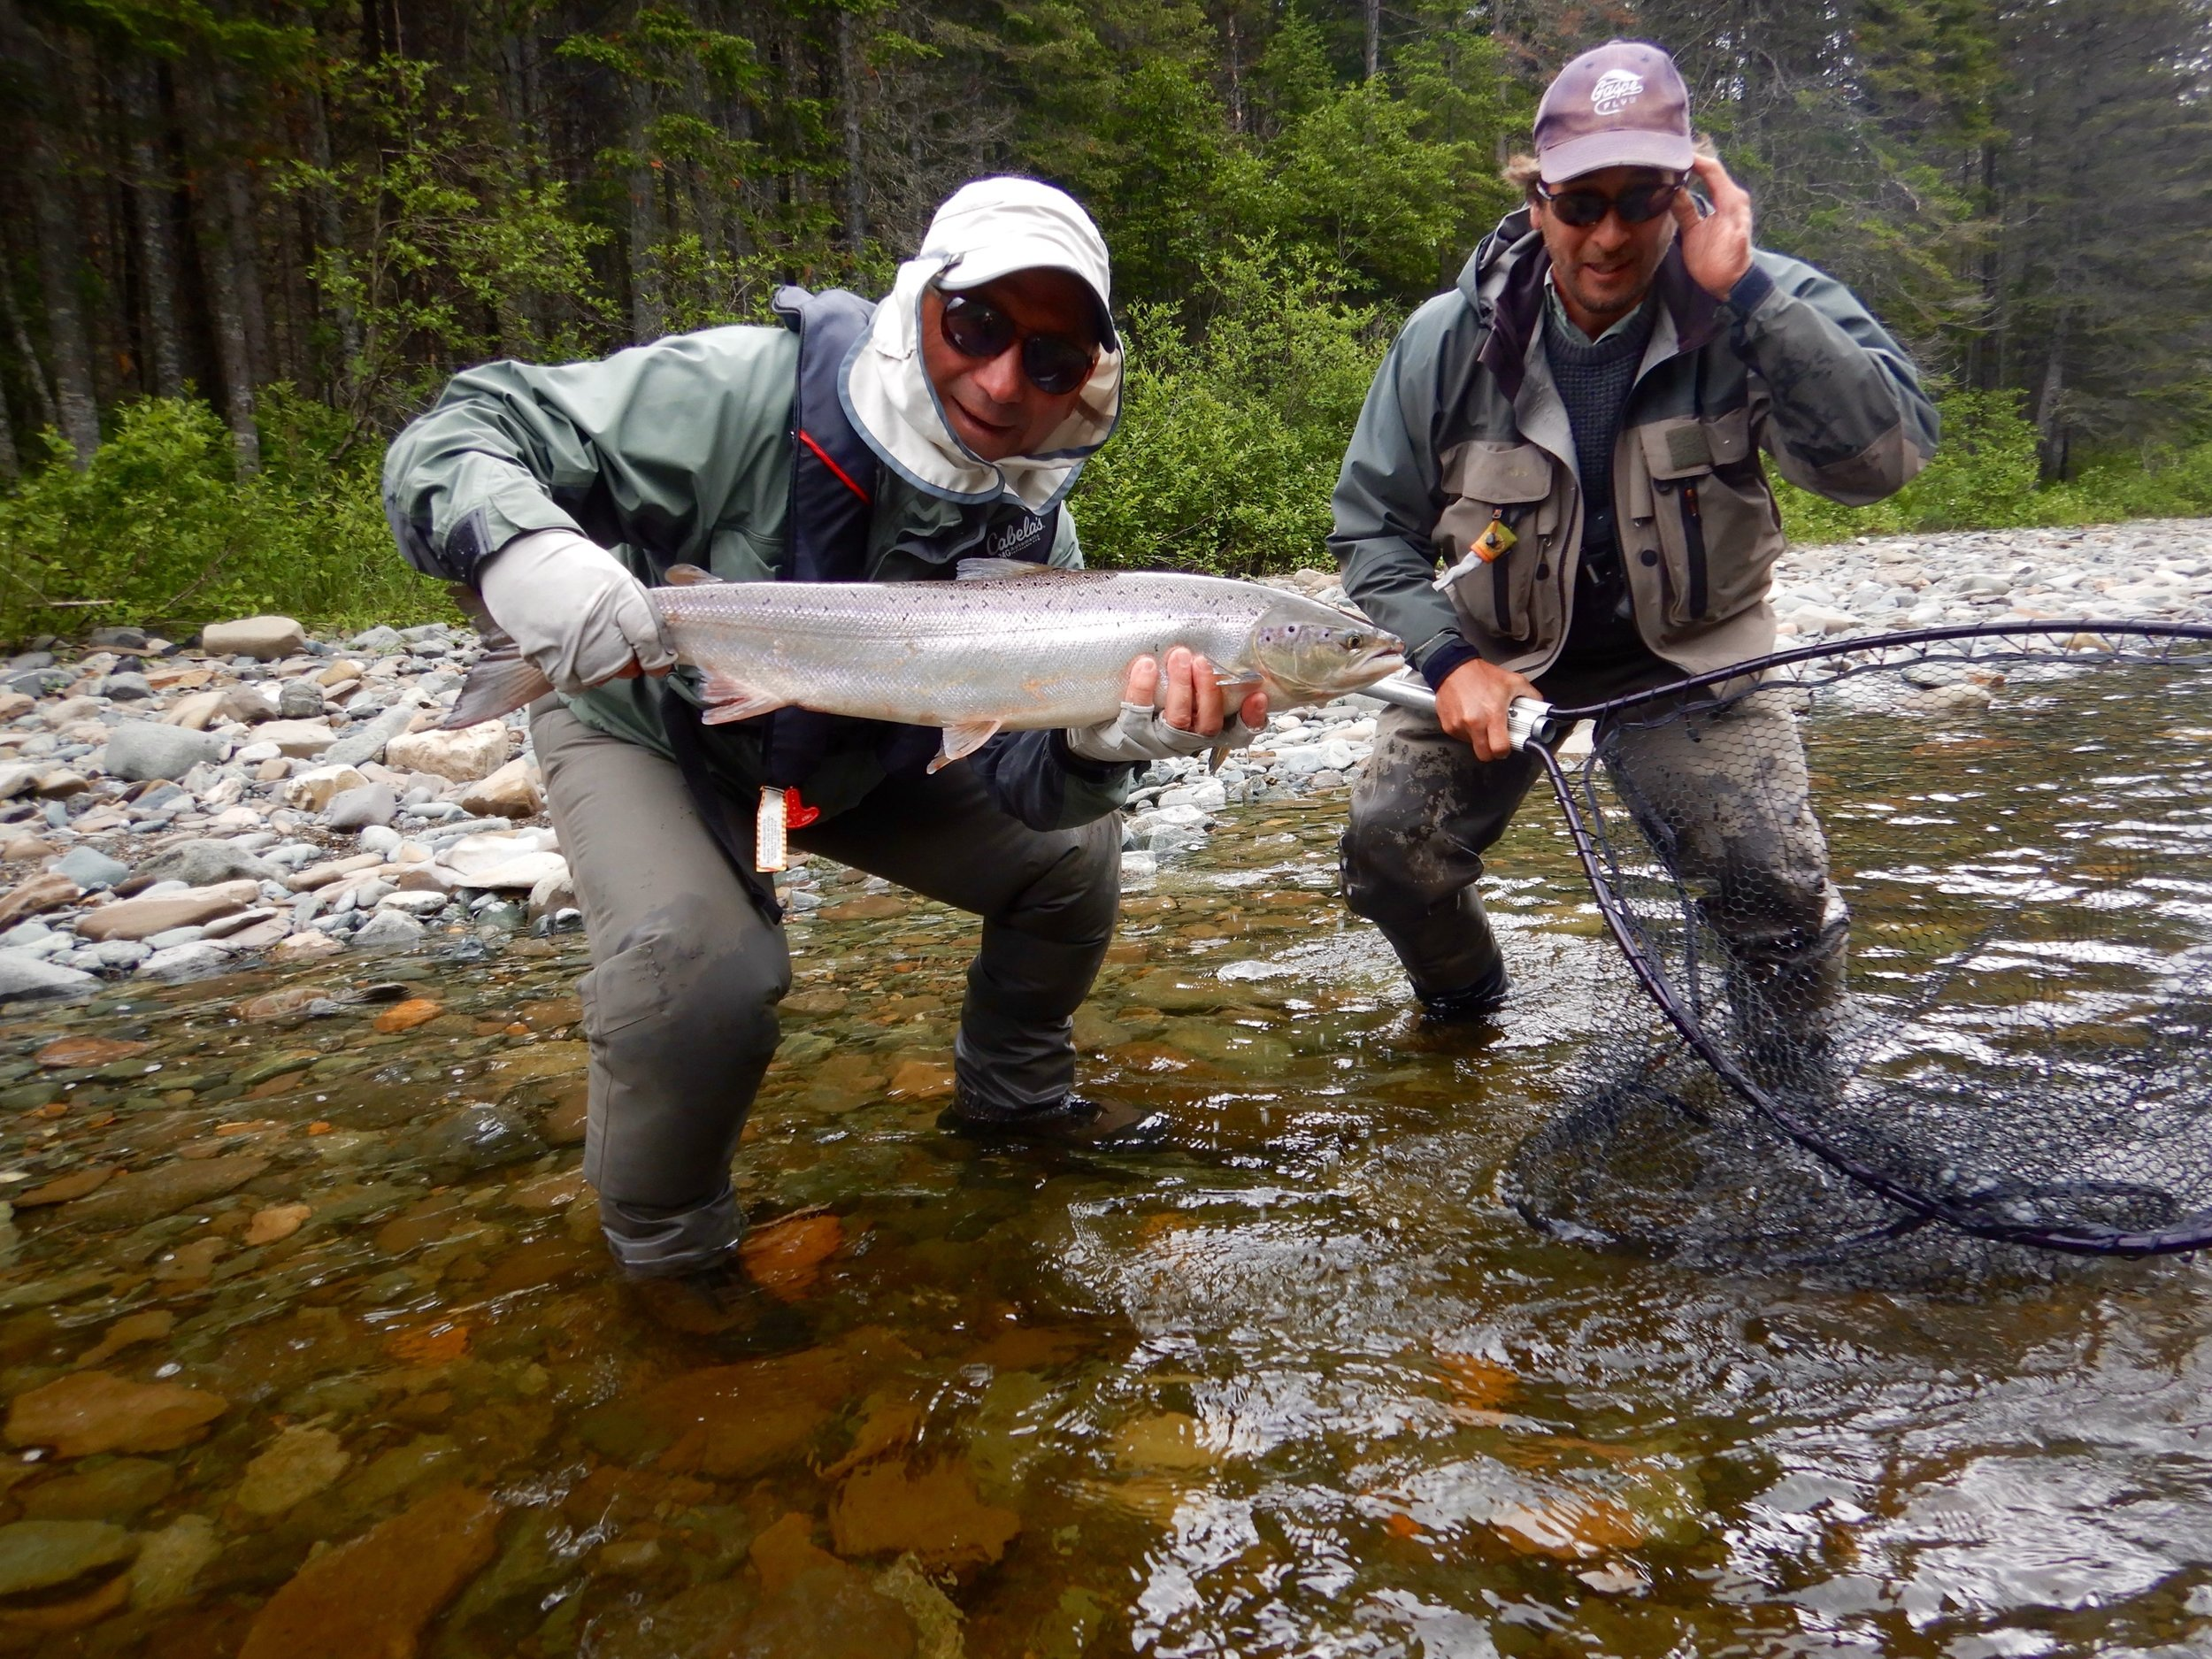 Gerry Savoie has been a part of Salmon Lodge for many years, well done Gerry, always great when you're at camp.